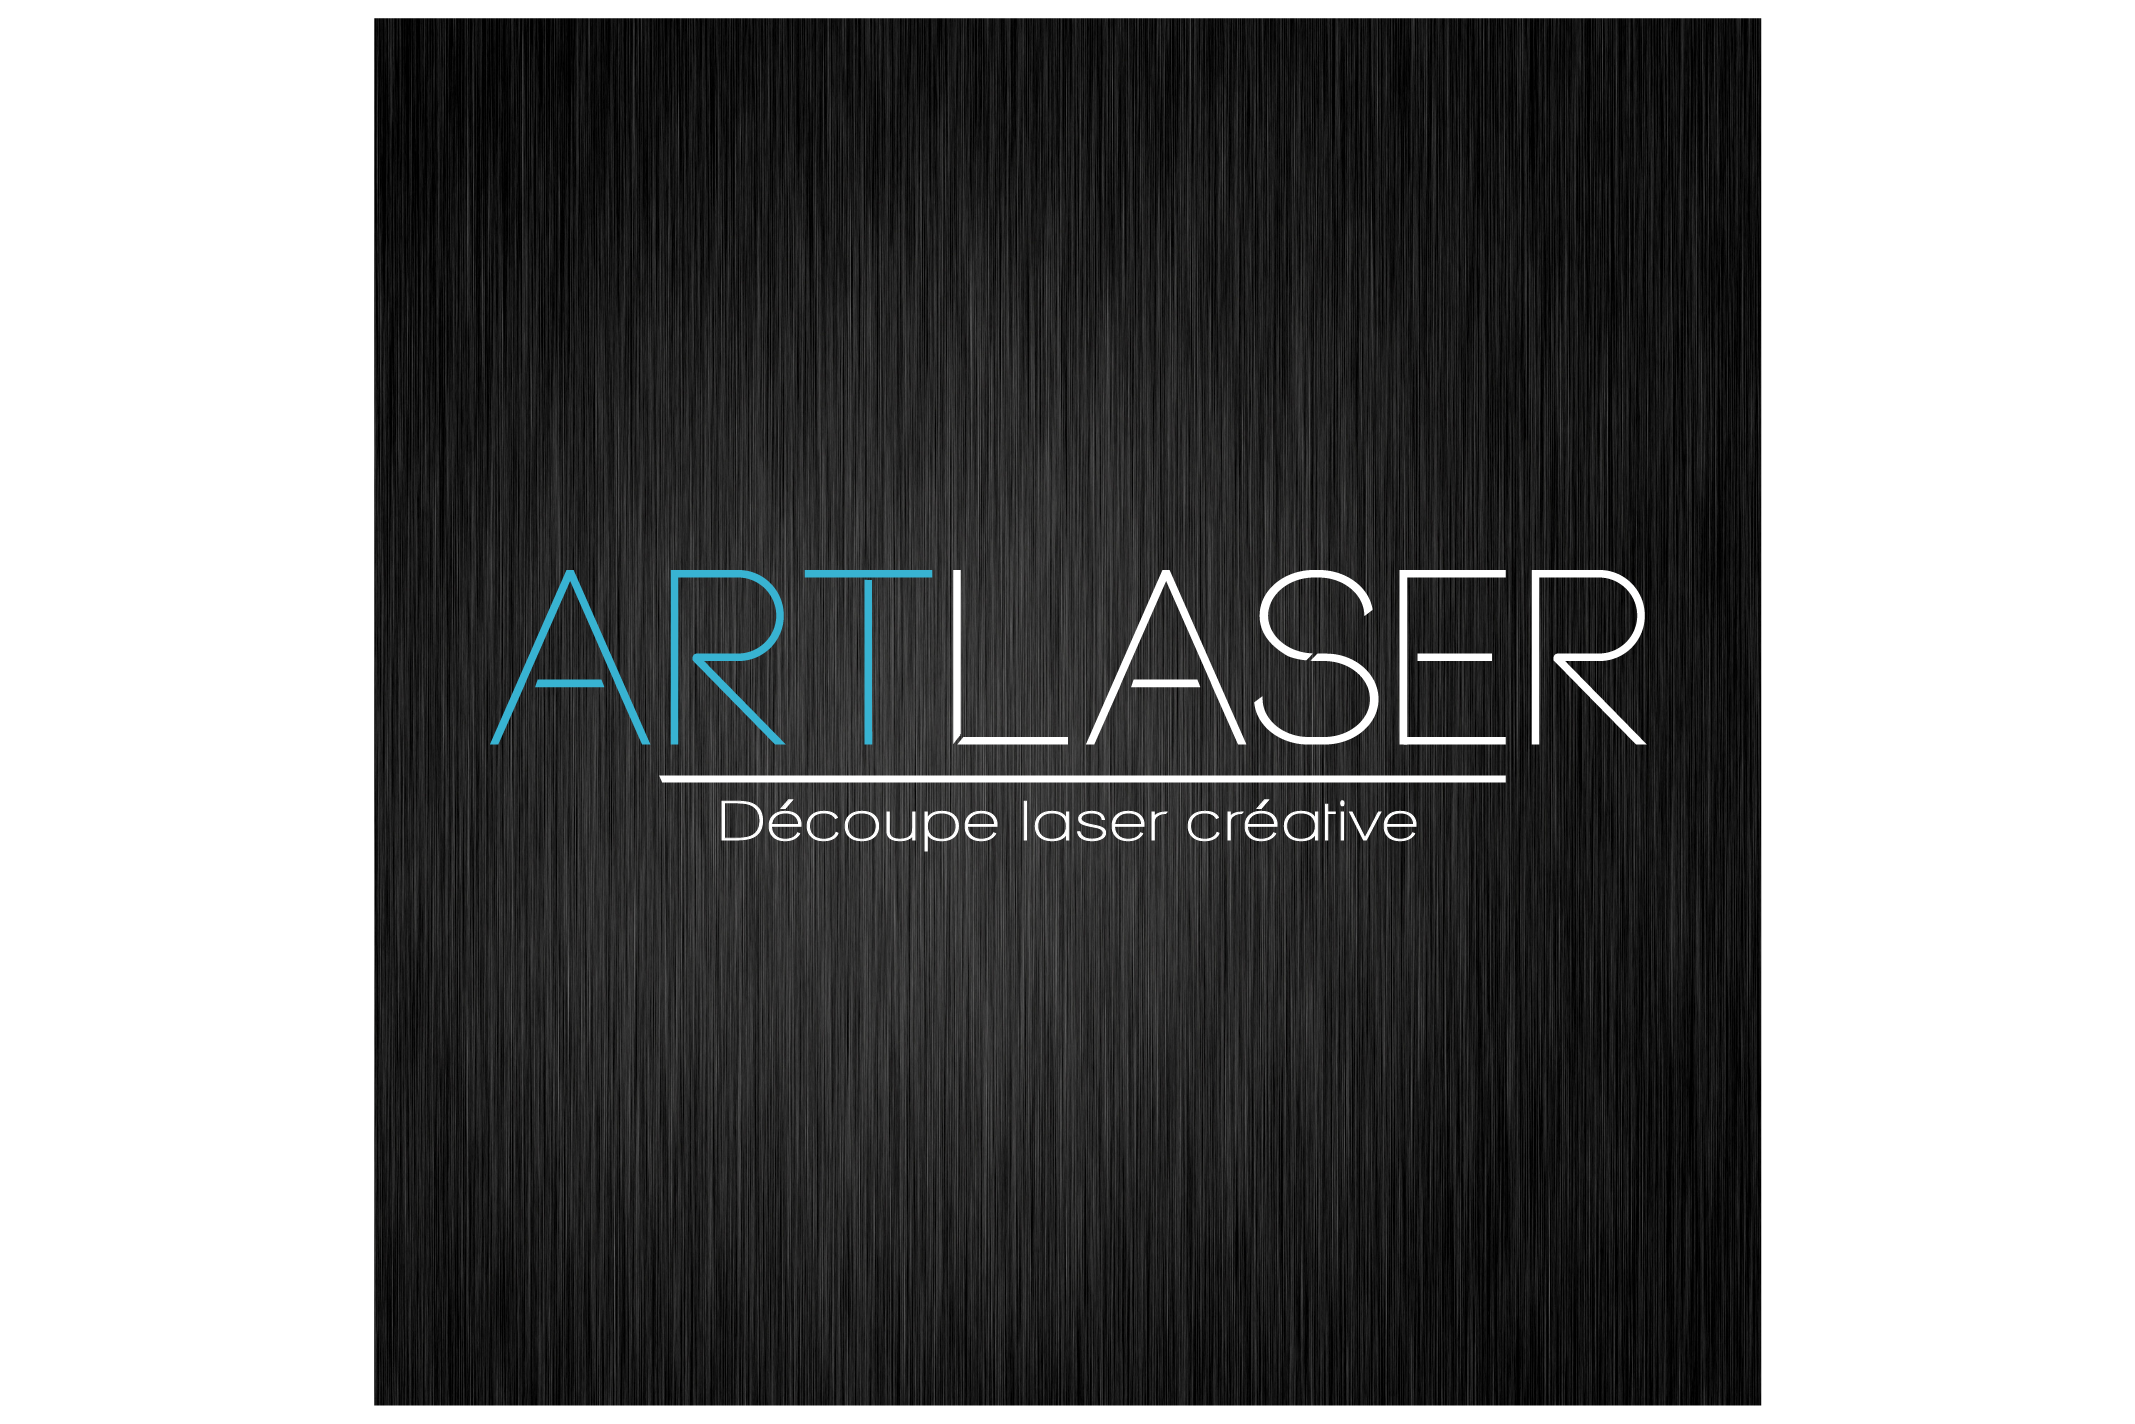 artlaser hosaiis. Black Bedroom Furniture Sets. Home Design Ideas